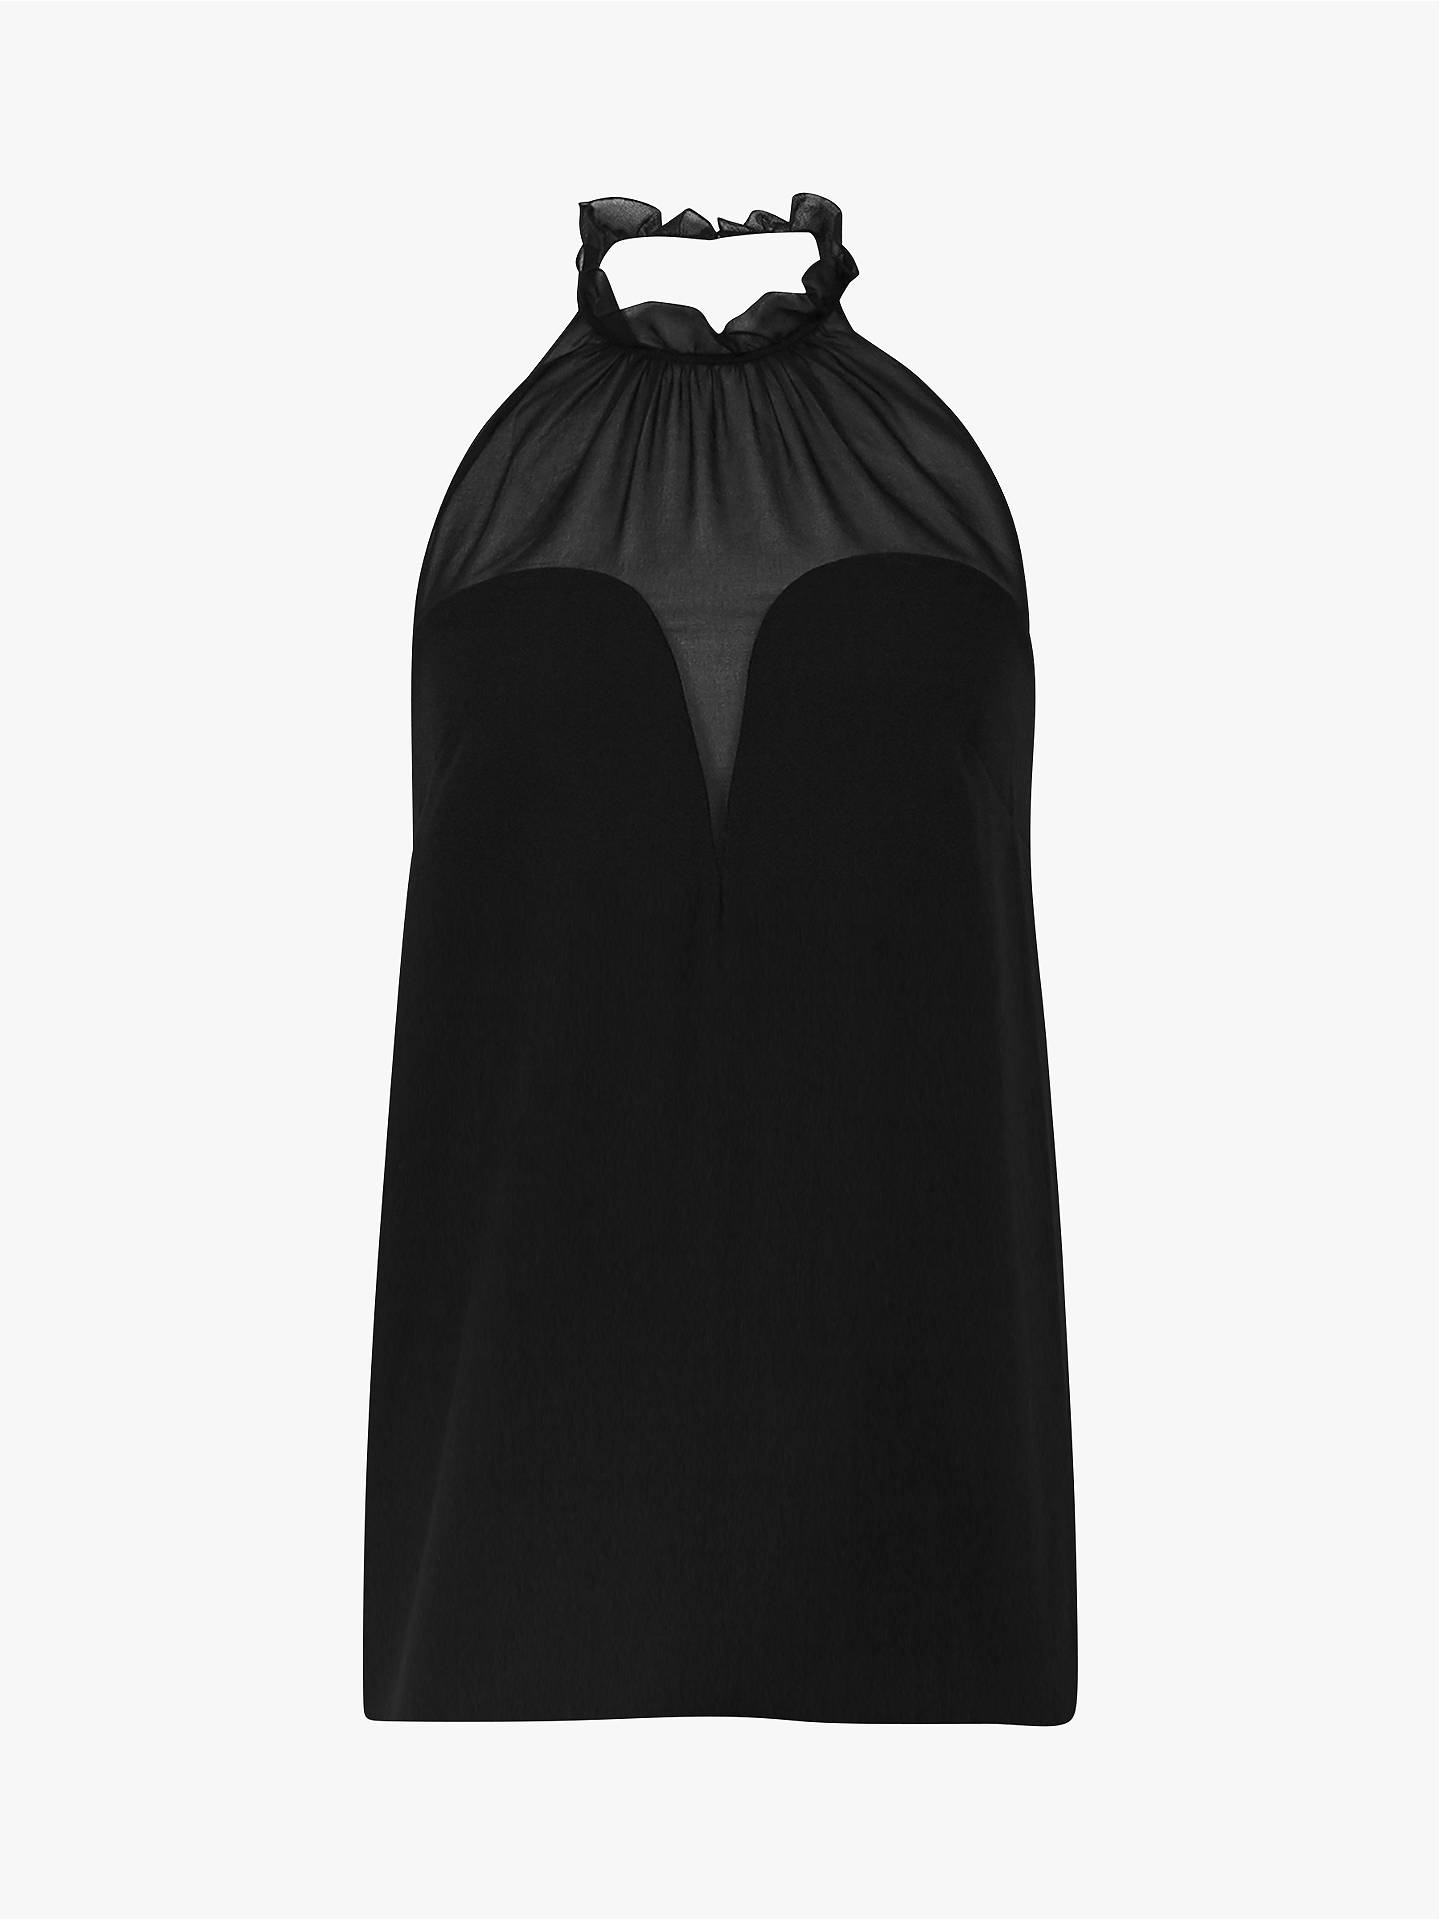 BuyReiss Delfina Ruffle Halter Top, Black, 6 Online at johnlewis.com